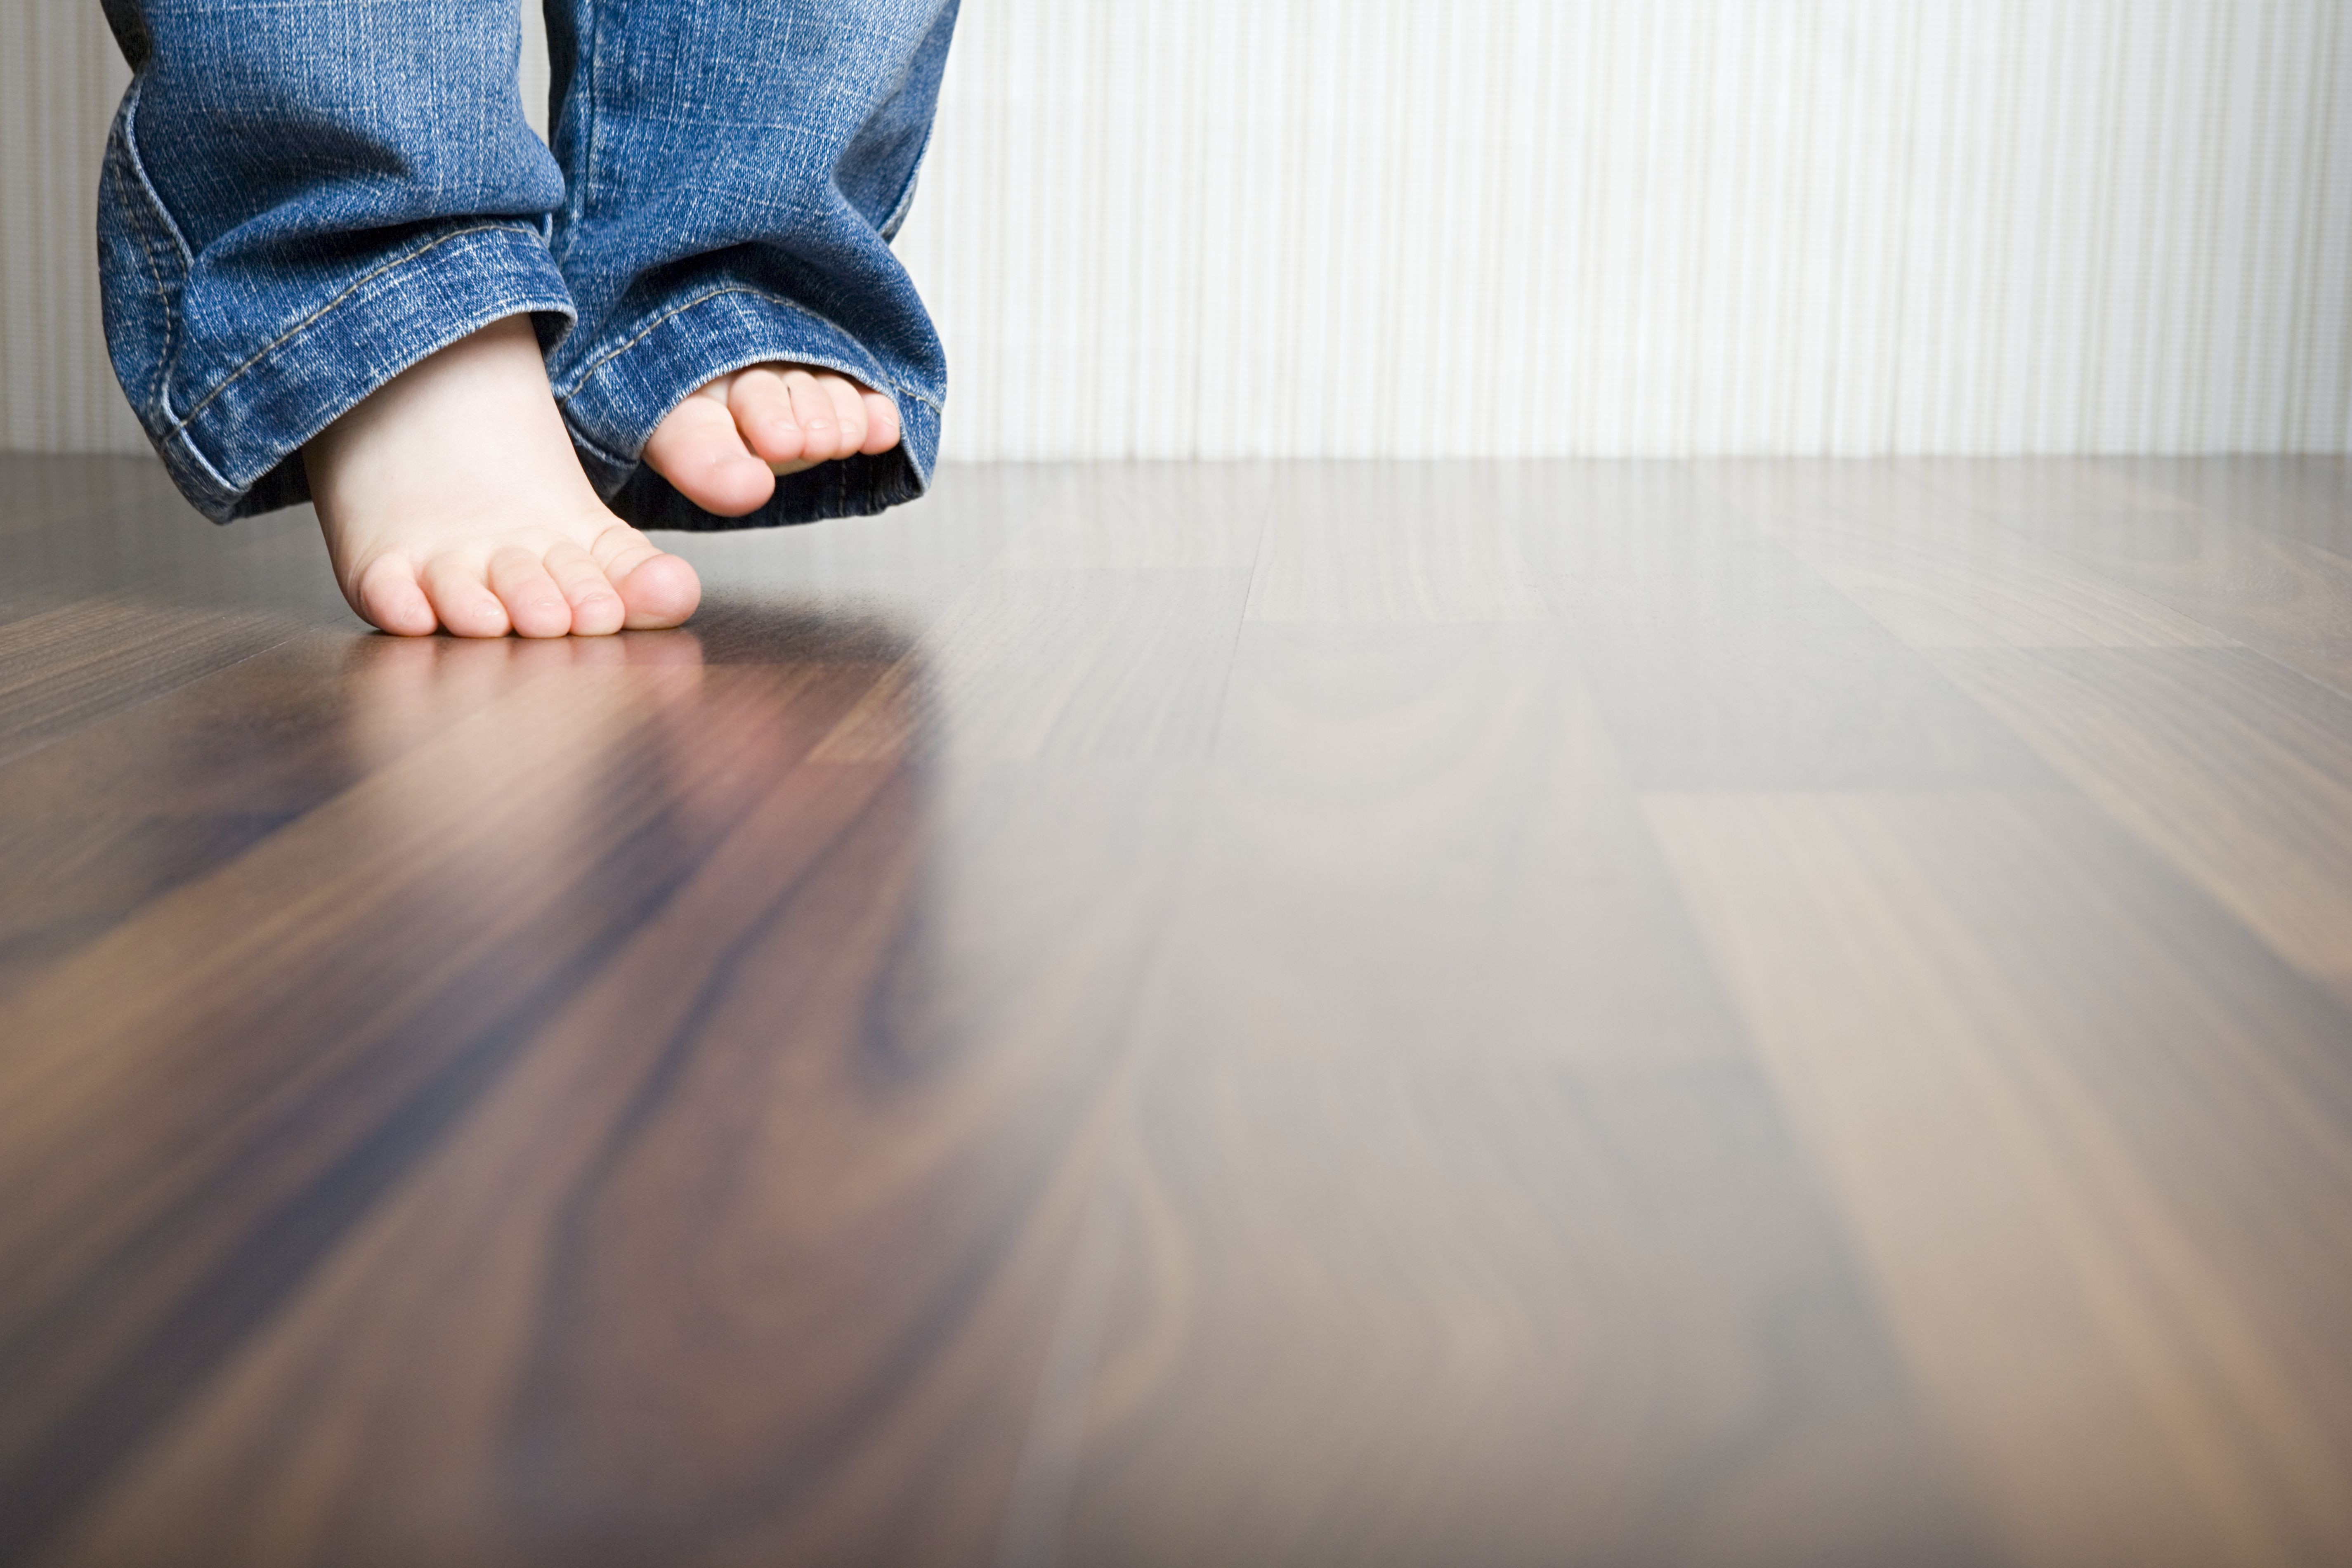 Black Hand Scraped Hardwood Flooring Of How to Clean Hardwood Floors Best Way to Clean Wood Flooring within 1512149908 Gettyimages 75403973